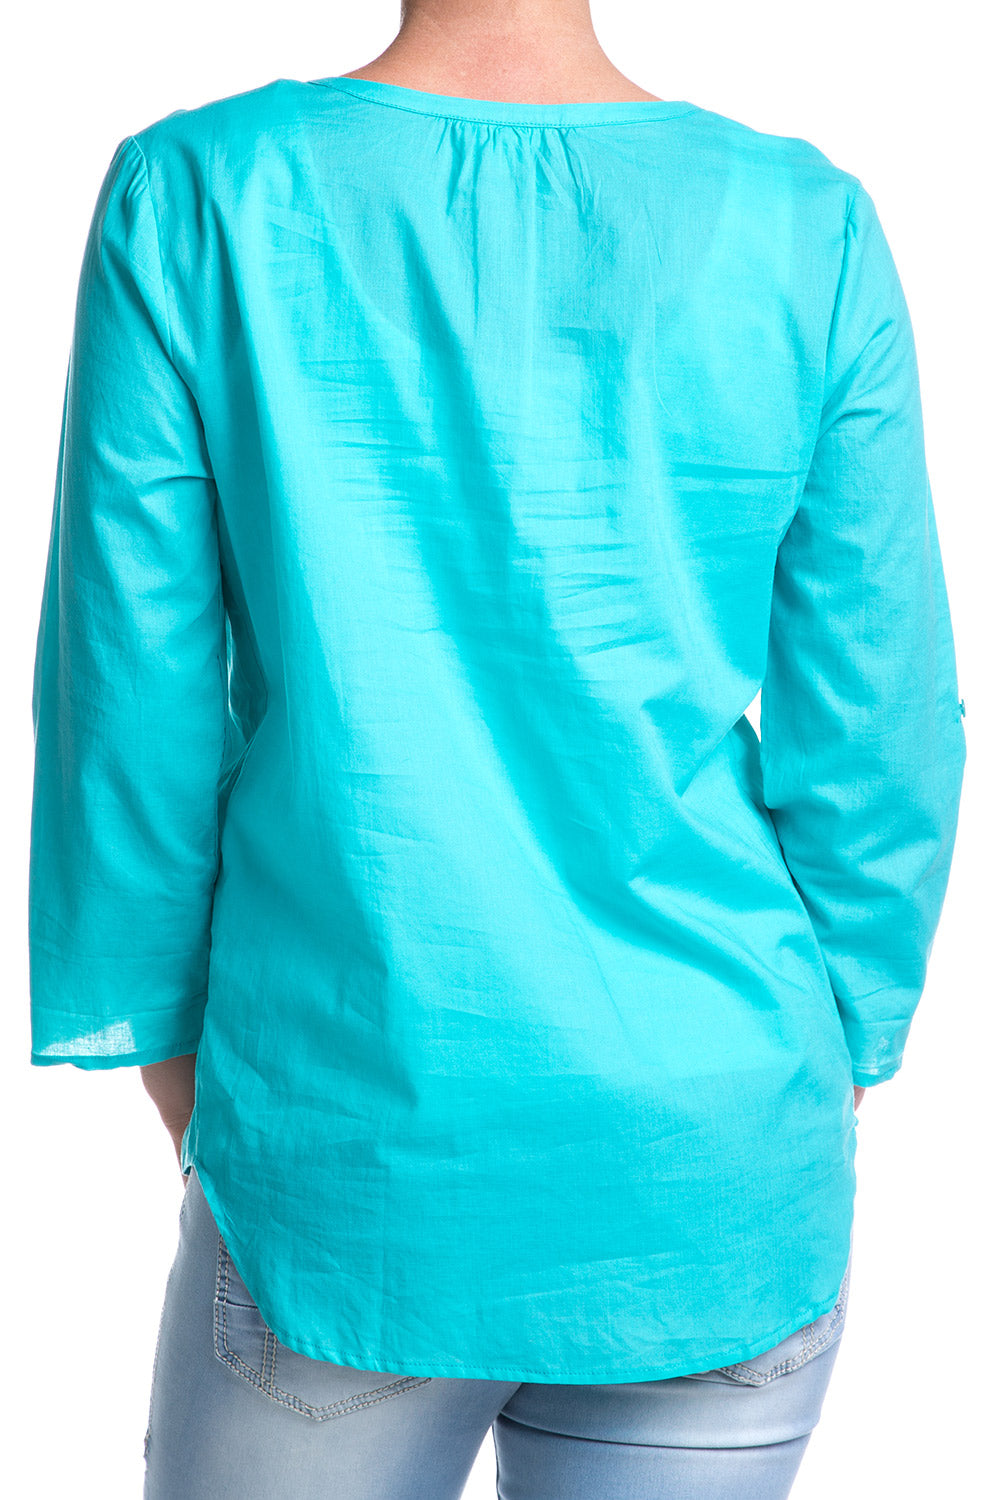 Type 1 Tucked Turquoise Top